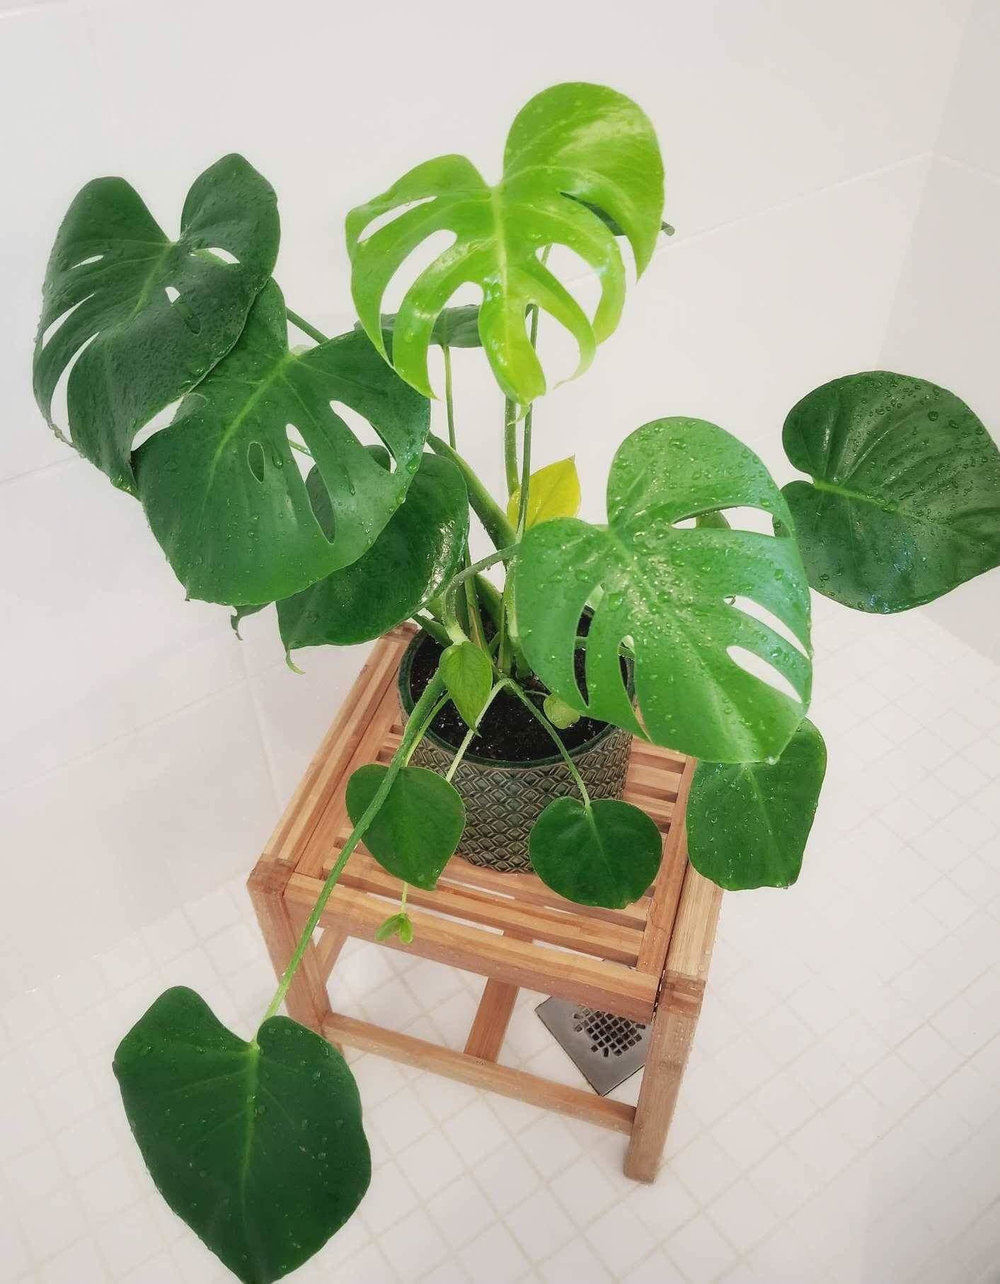 warm shower - Place plants in shower and use a protective tray or towel underneath to prevent dirt from going down drain. If space allows, temporarily relocate plants to bathrooms which are naturally higher in humidity during dry winter months. Photo credit Pam G.